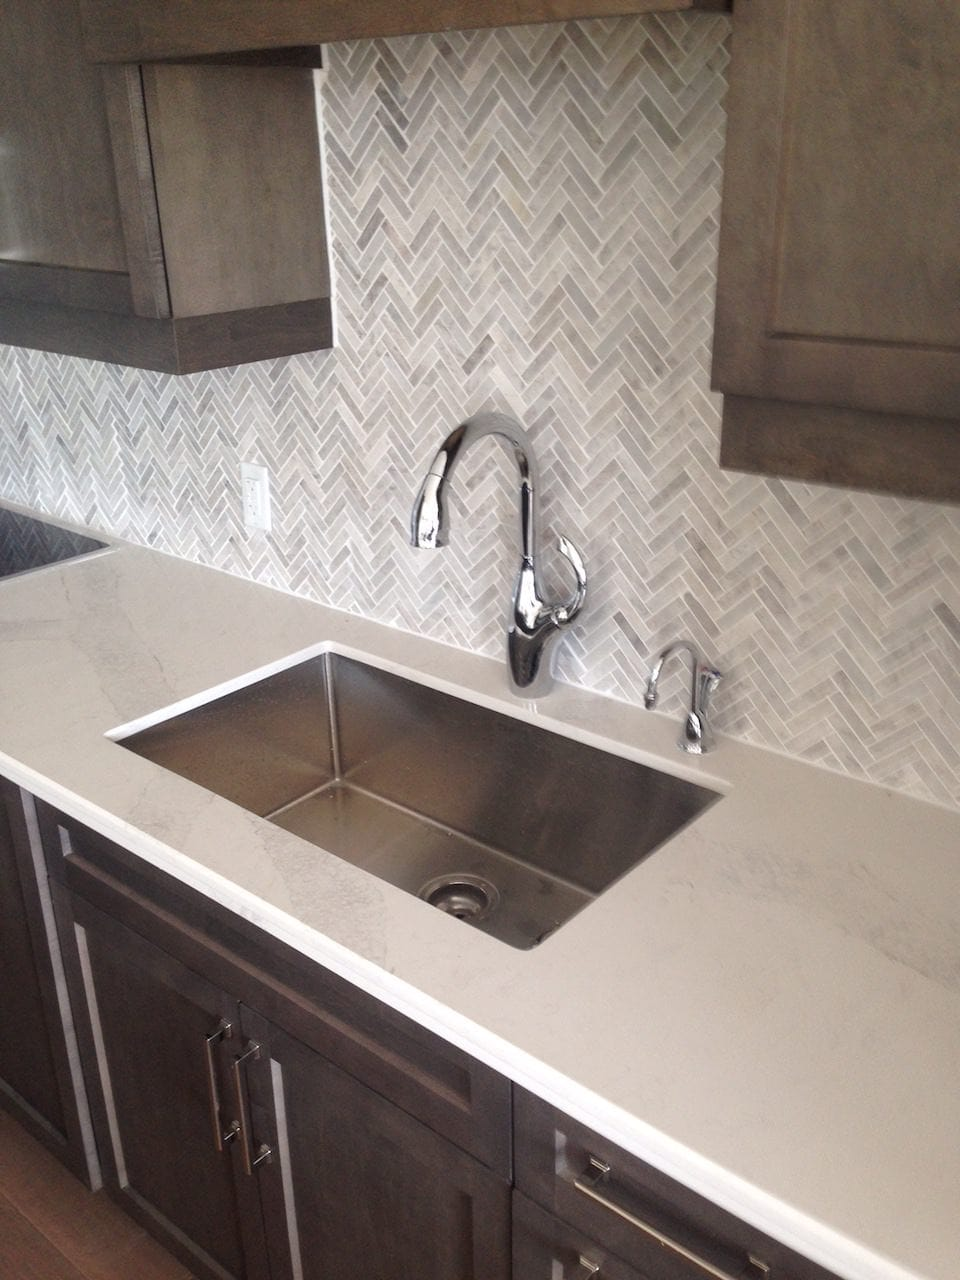 Kitchen sink and counter installation